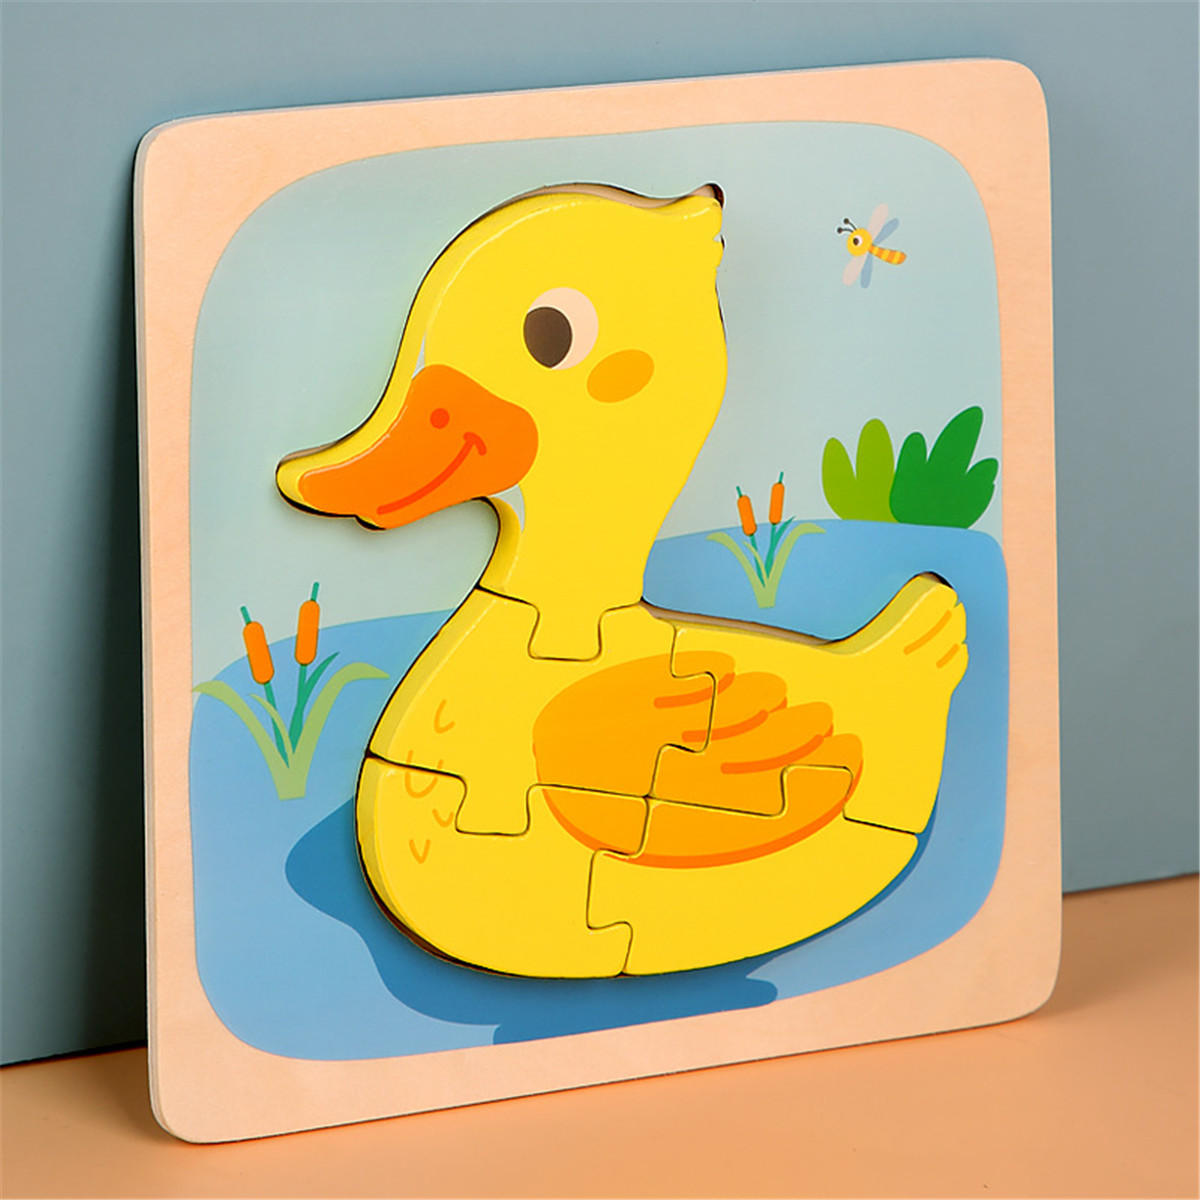 3D Animal Puzzle Learning Toys Wooden Jigsaw Puzzle Kids Early Educational Toys for Toddlers 1-4 Year Old Preschool Baby Boys Girls